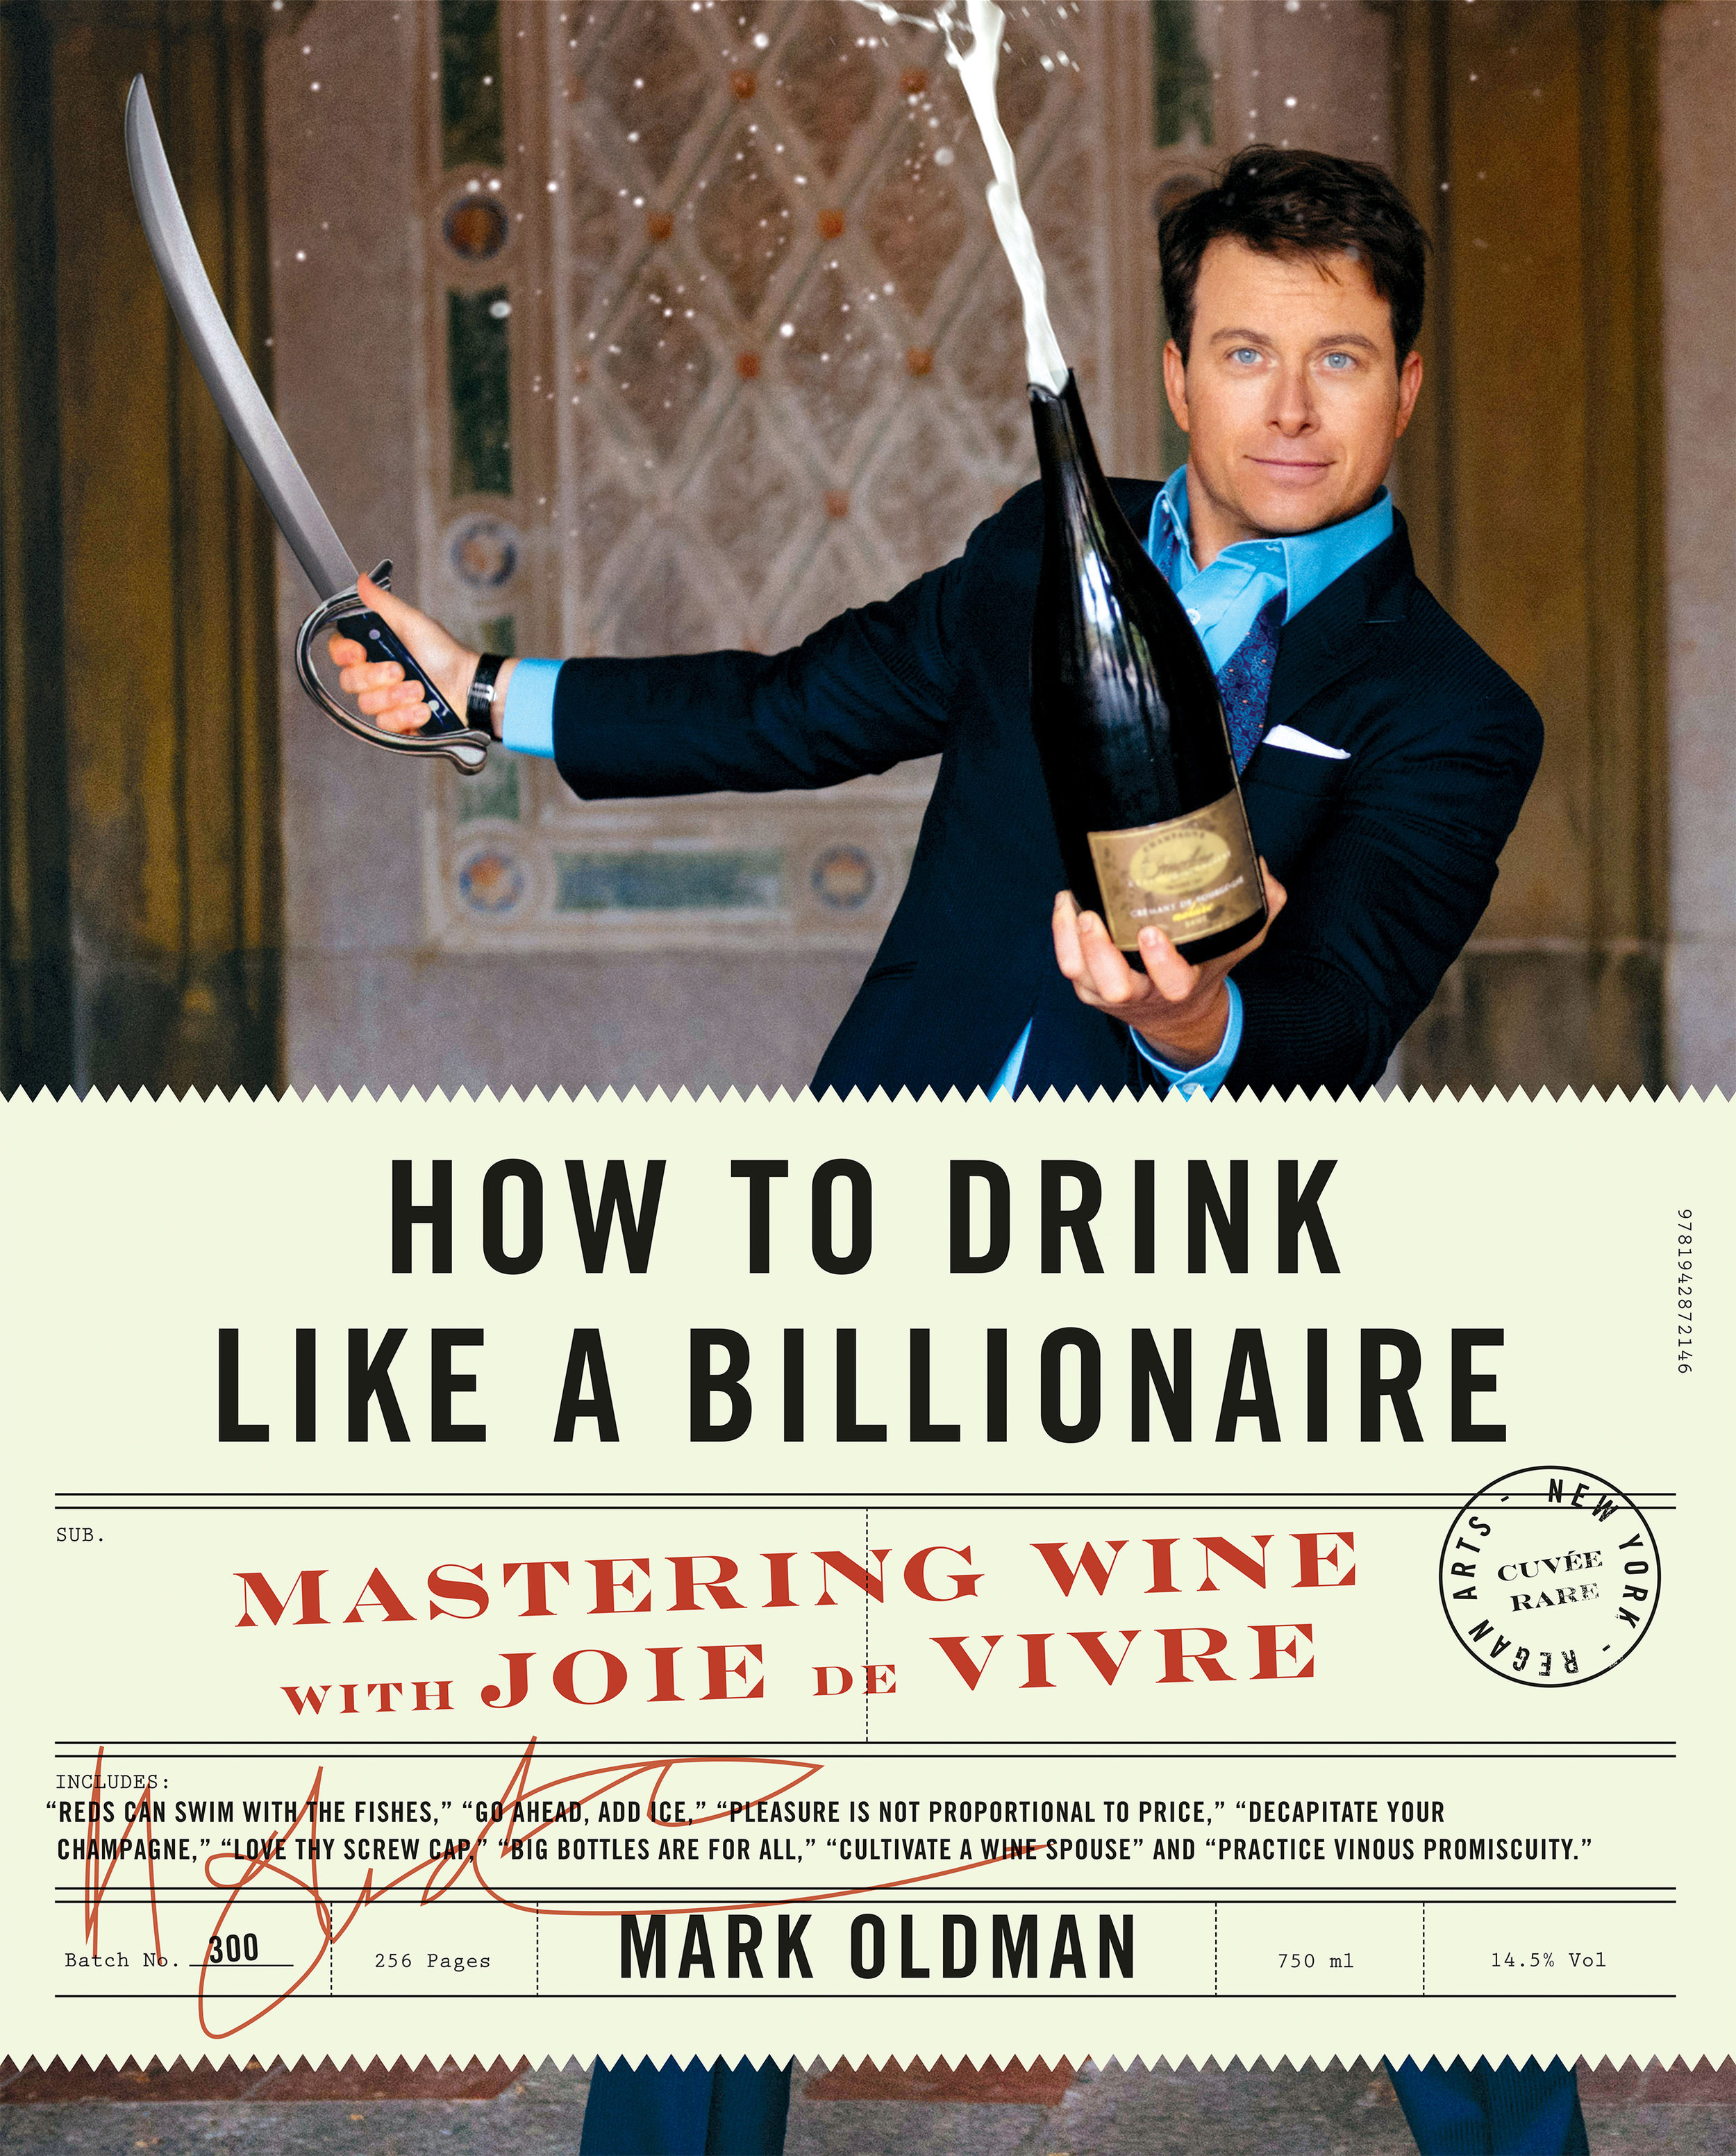 How to Drink Like a Billionaire by Mark Oldman